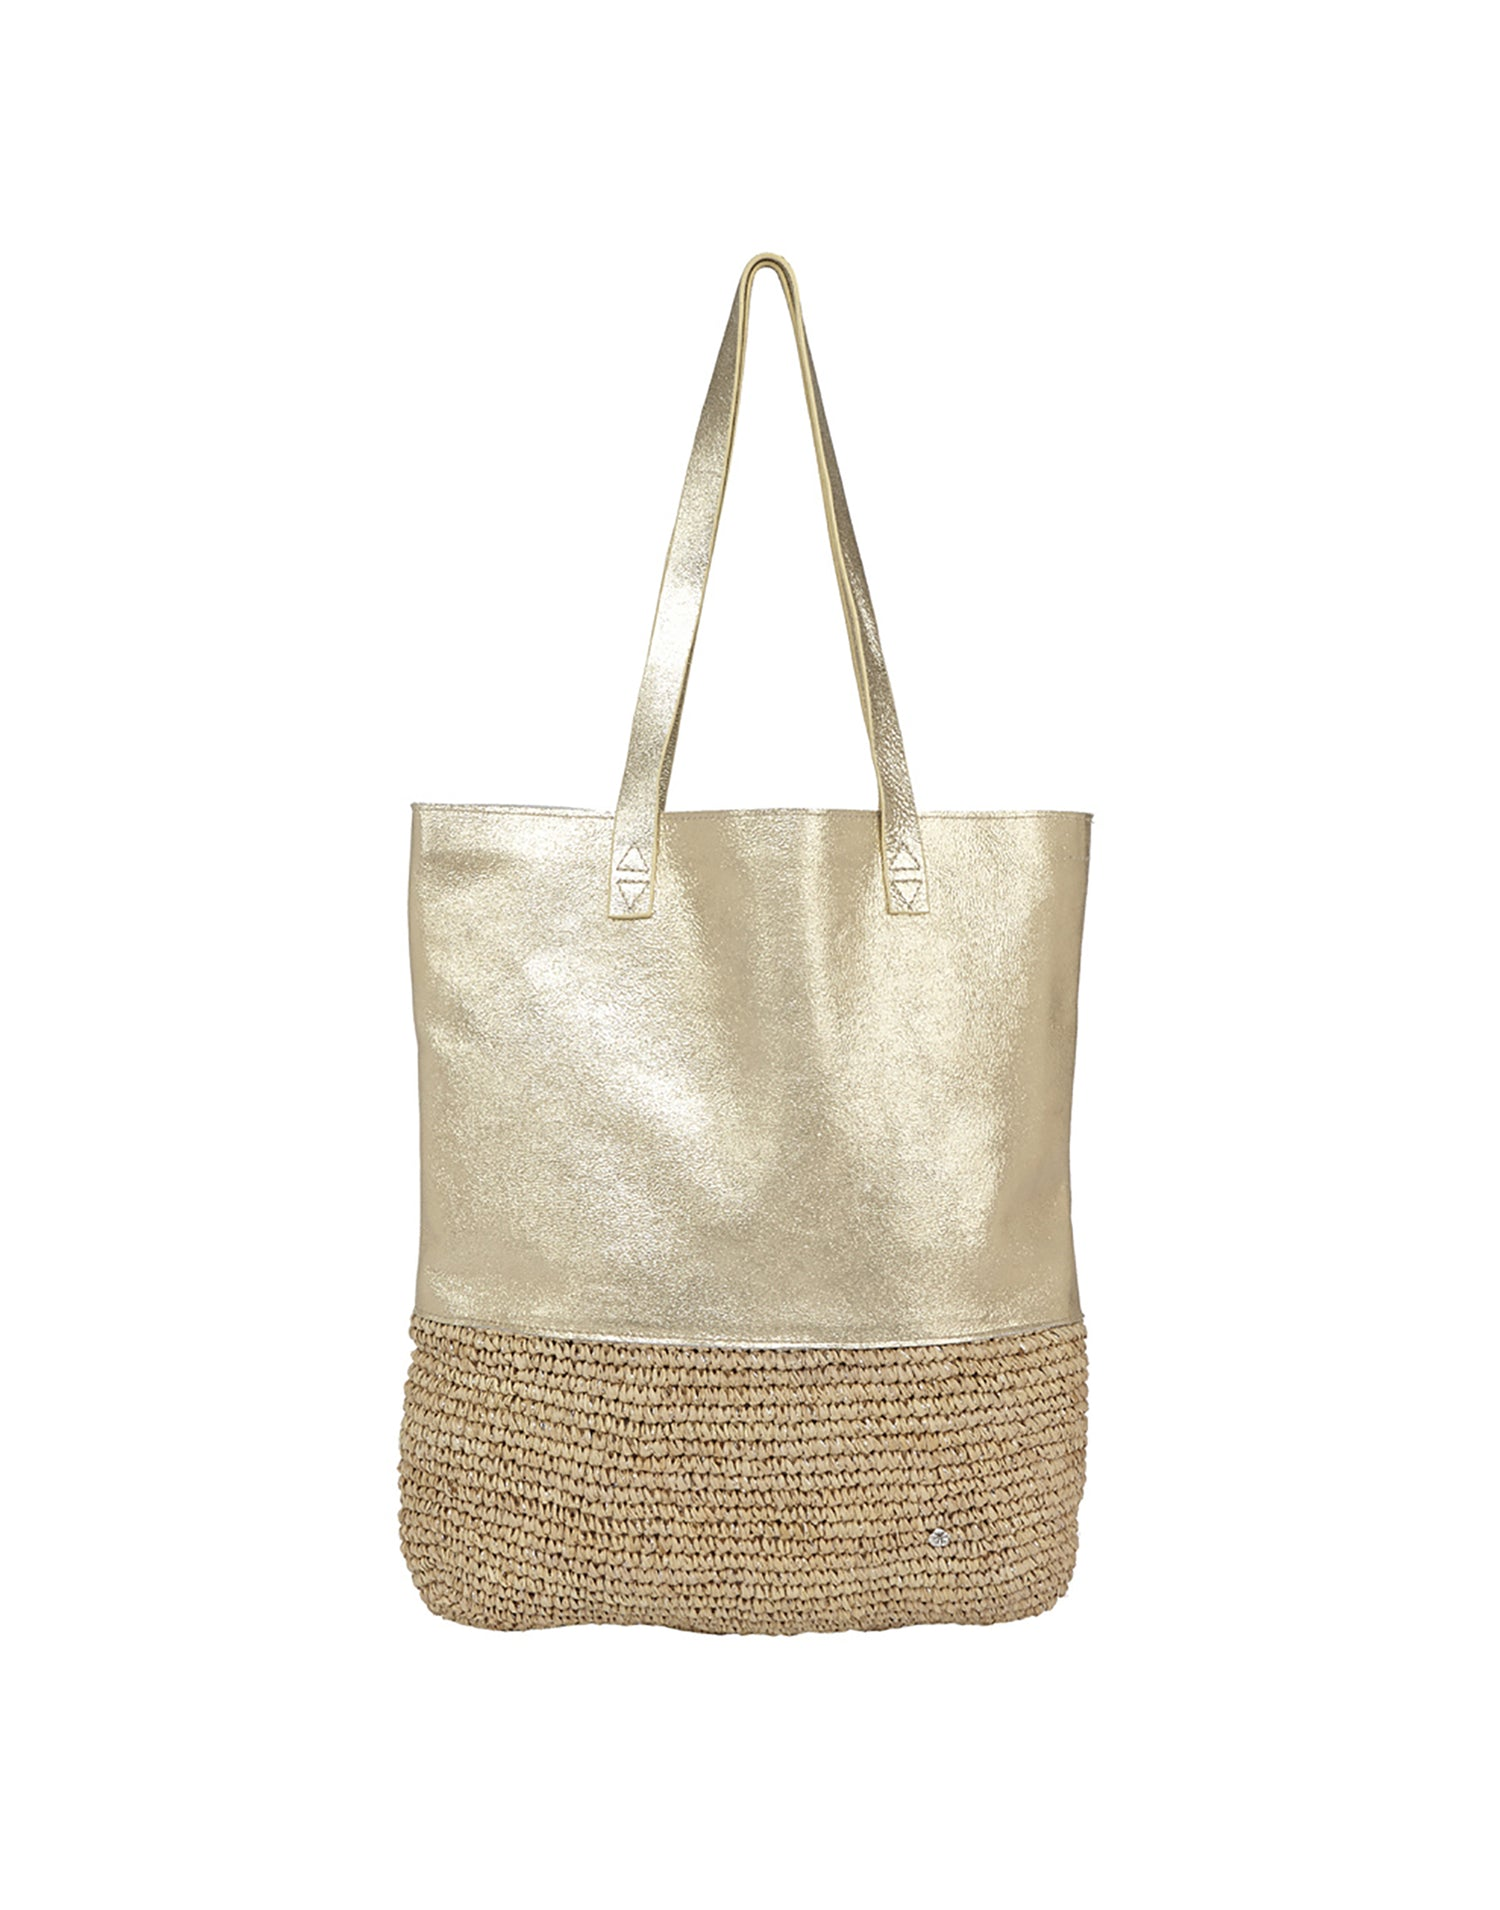 Florabella's Paradise Tote in Almond/Sliver - Product View